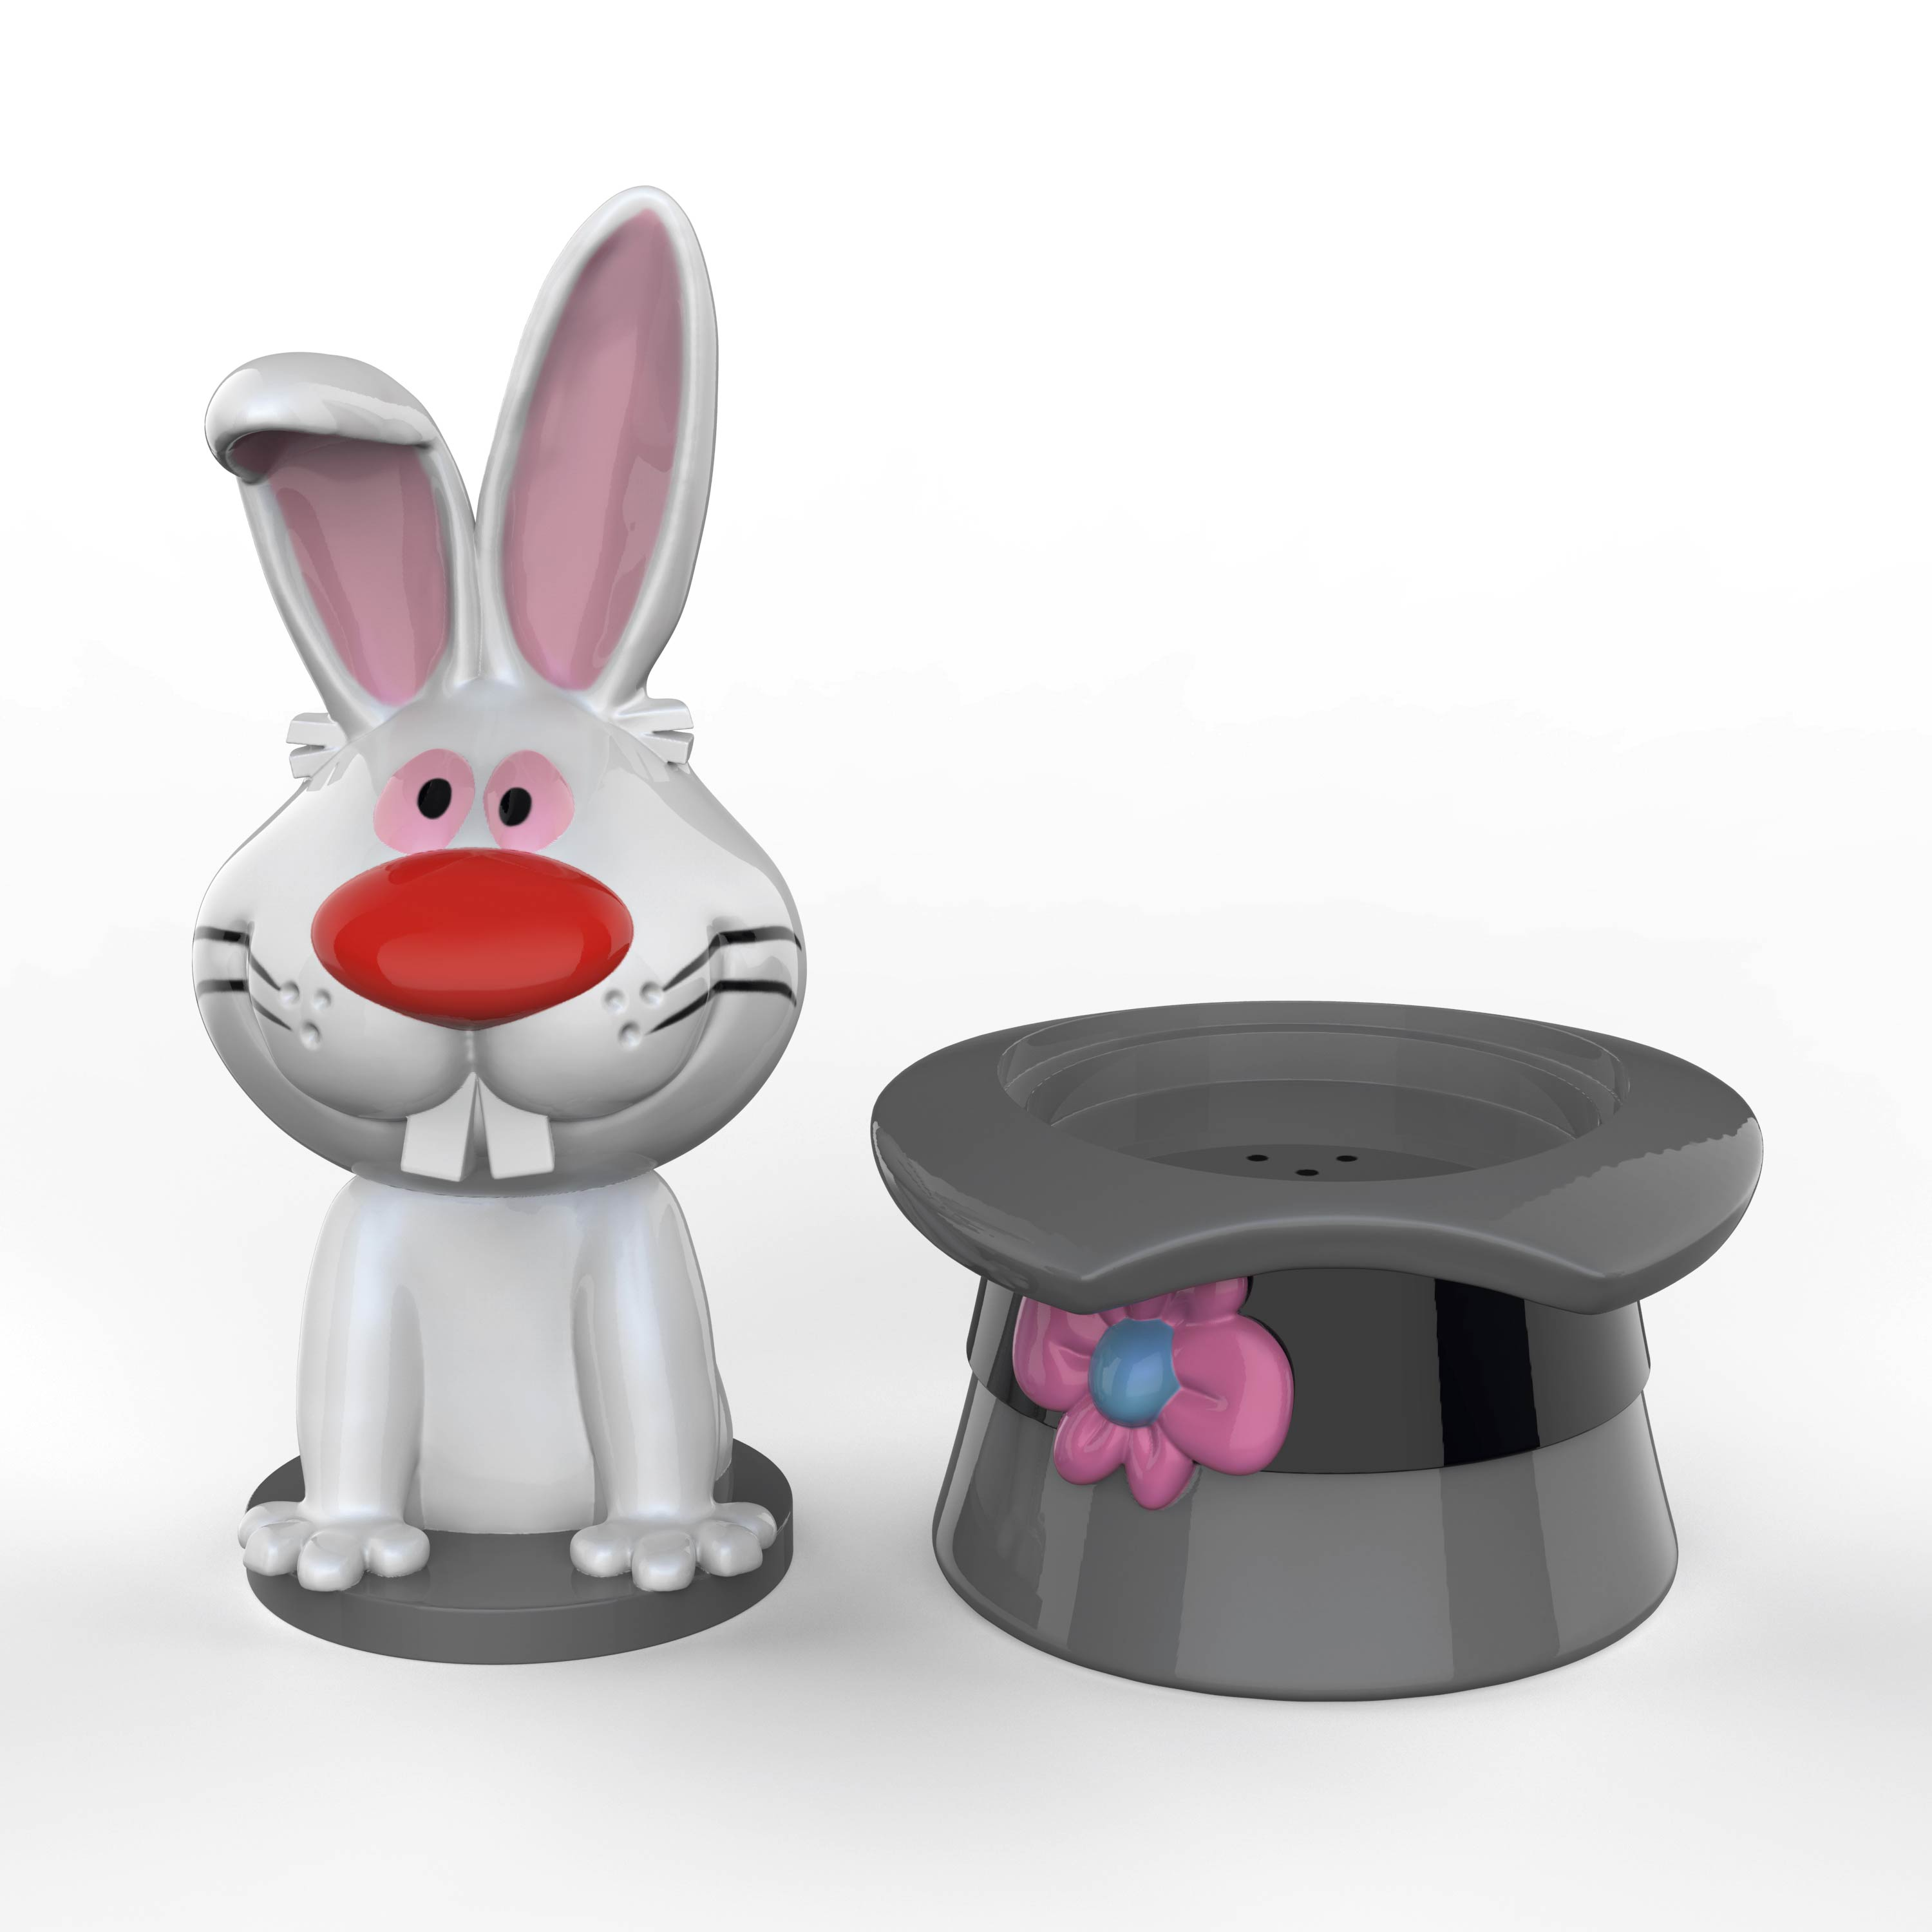 Frosty the Snowman Salt and Pepper Shaker Set, Top Hat & Bunny, 2-piece set slideshow image 2